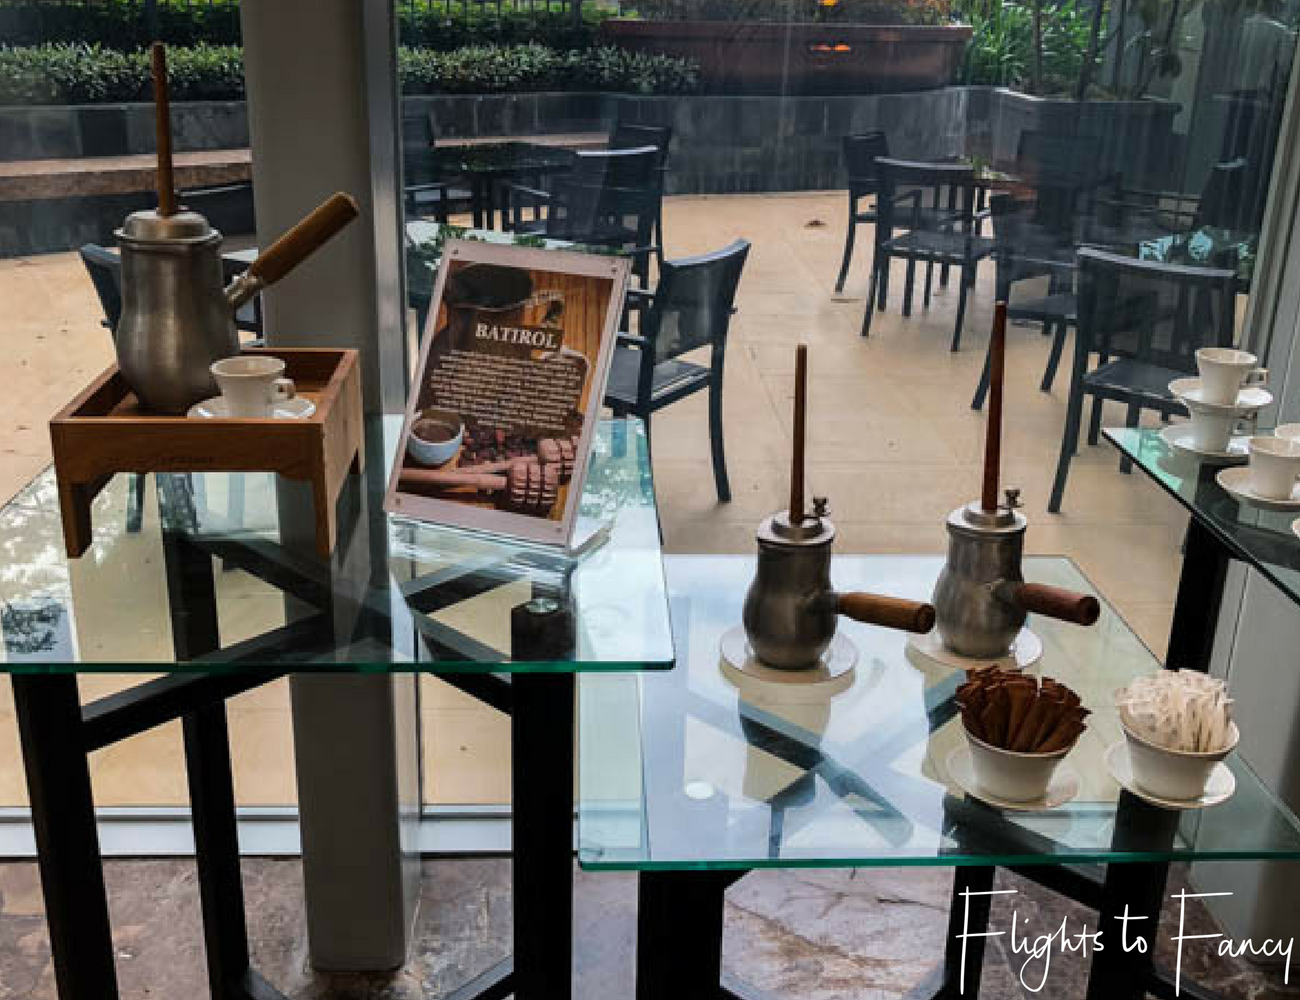 Flights To Fancy @ Raffles Makati Manila - Hot Chocolate? Yes please!